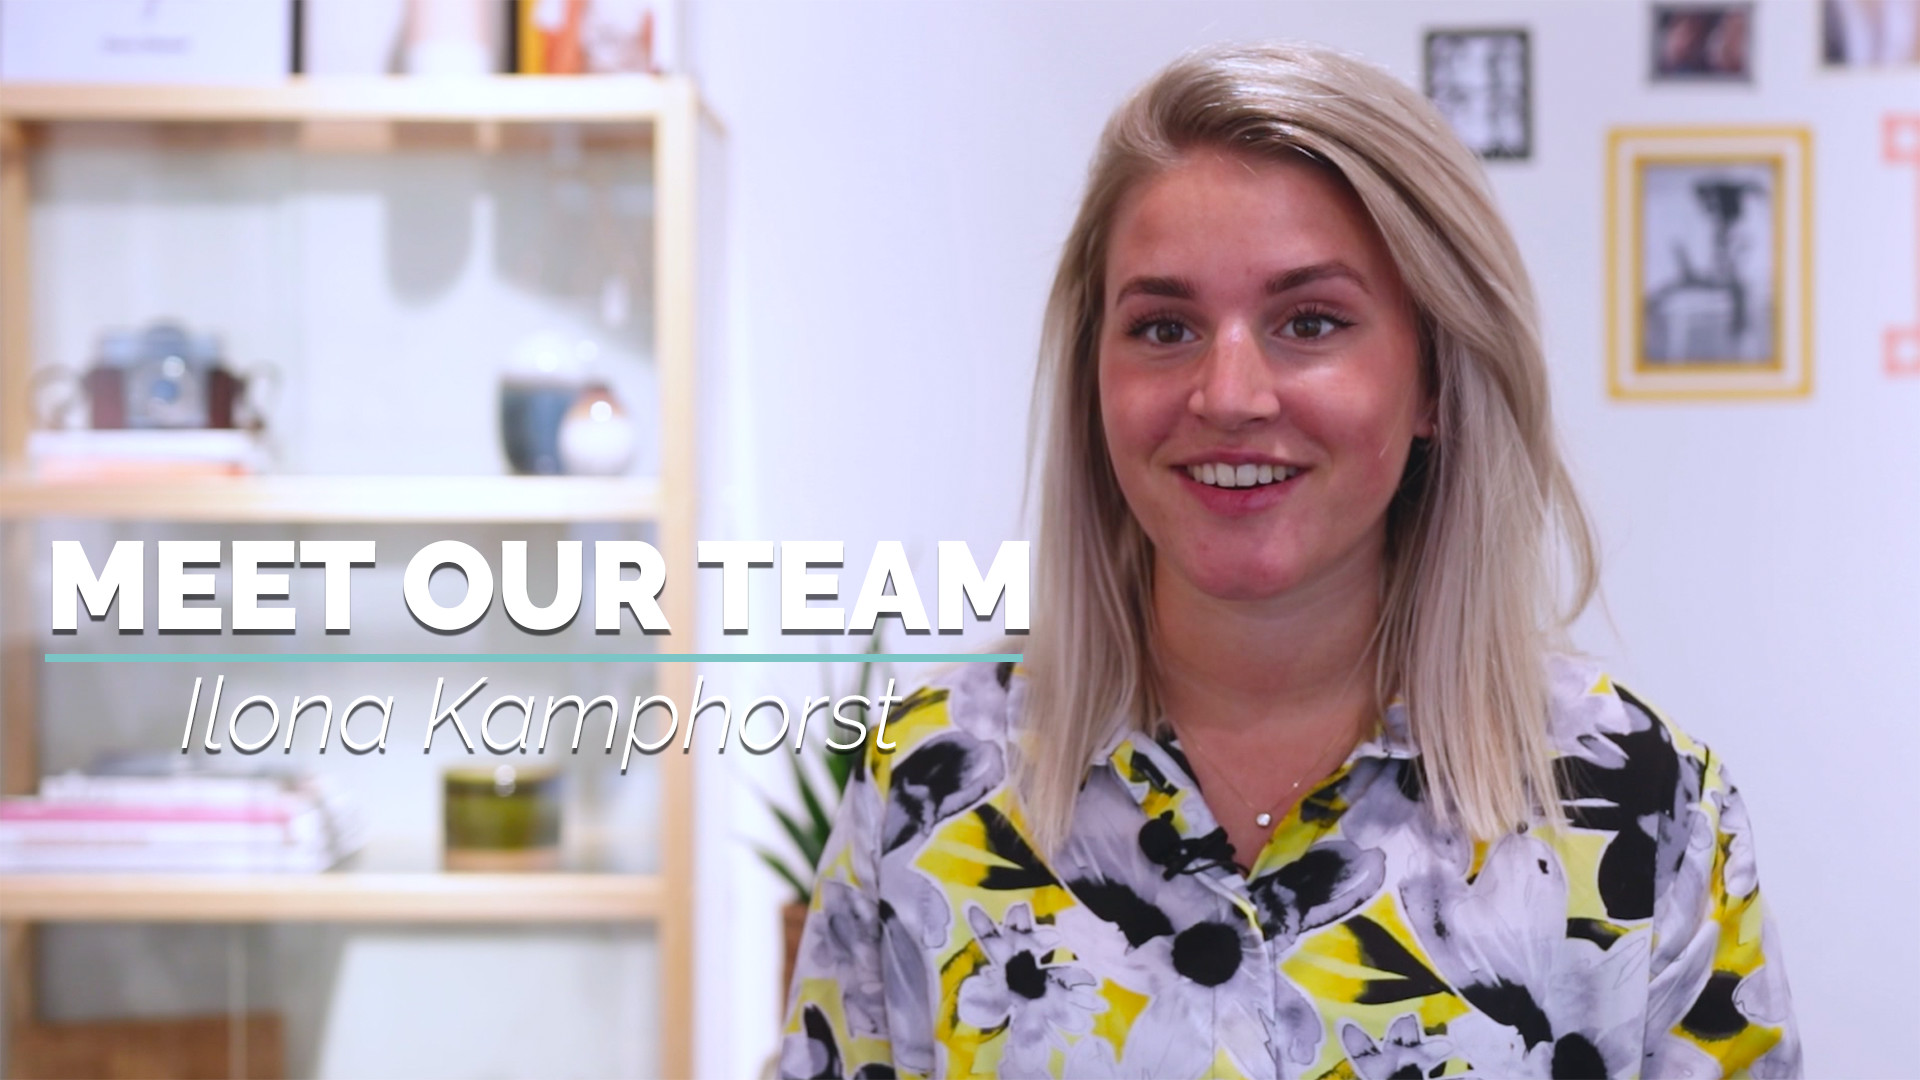 Meet our team: Ilona Kamphorst